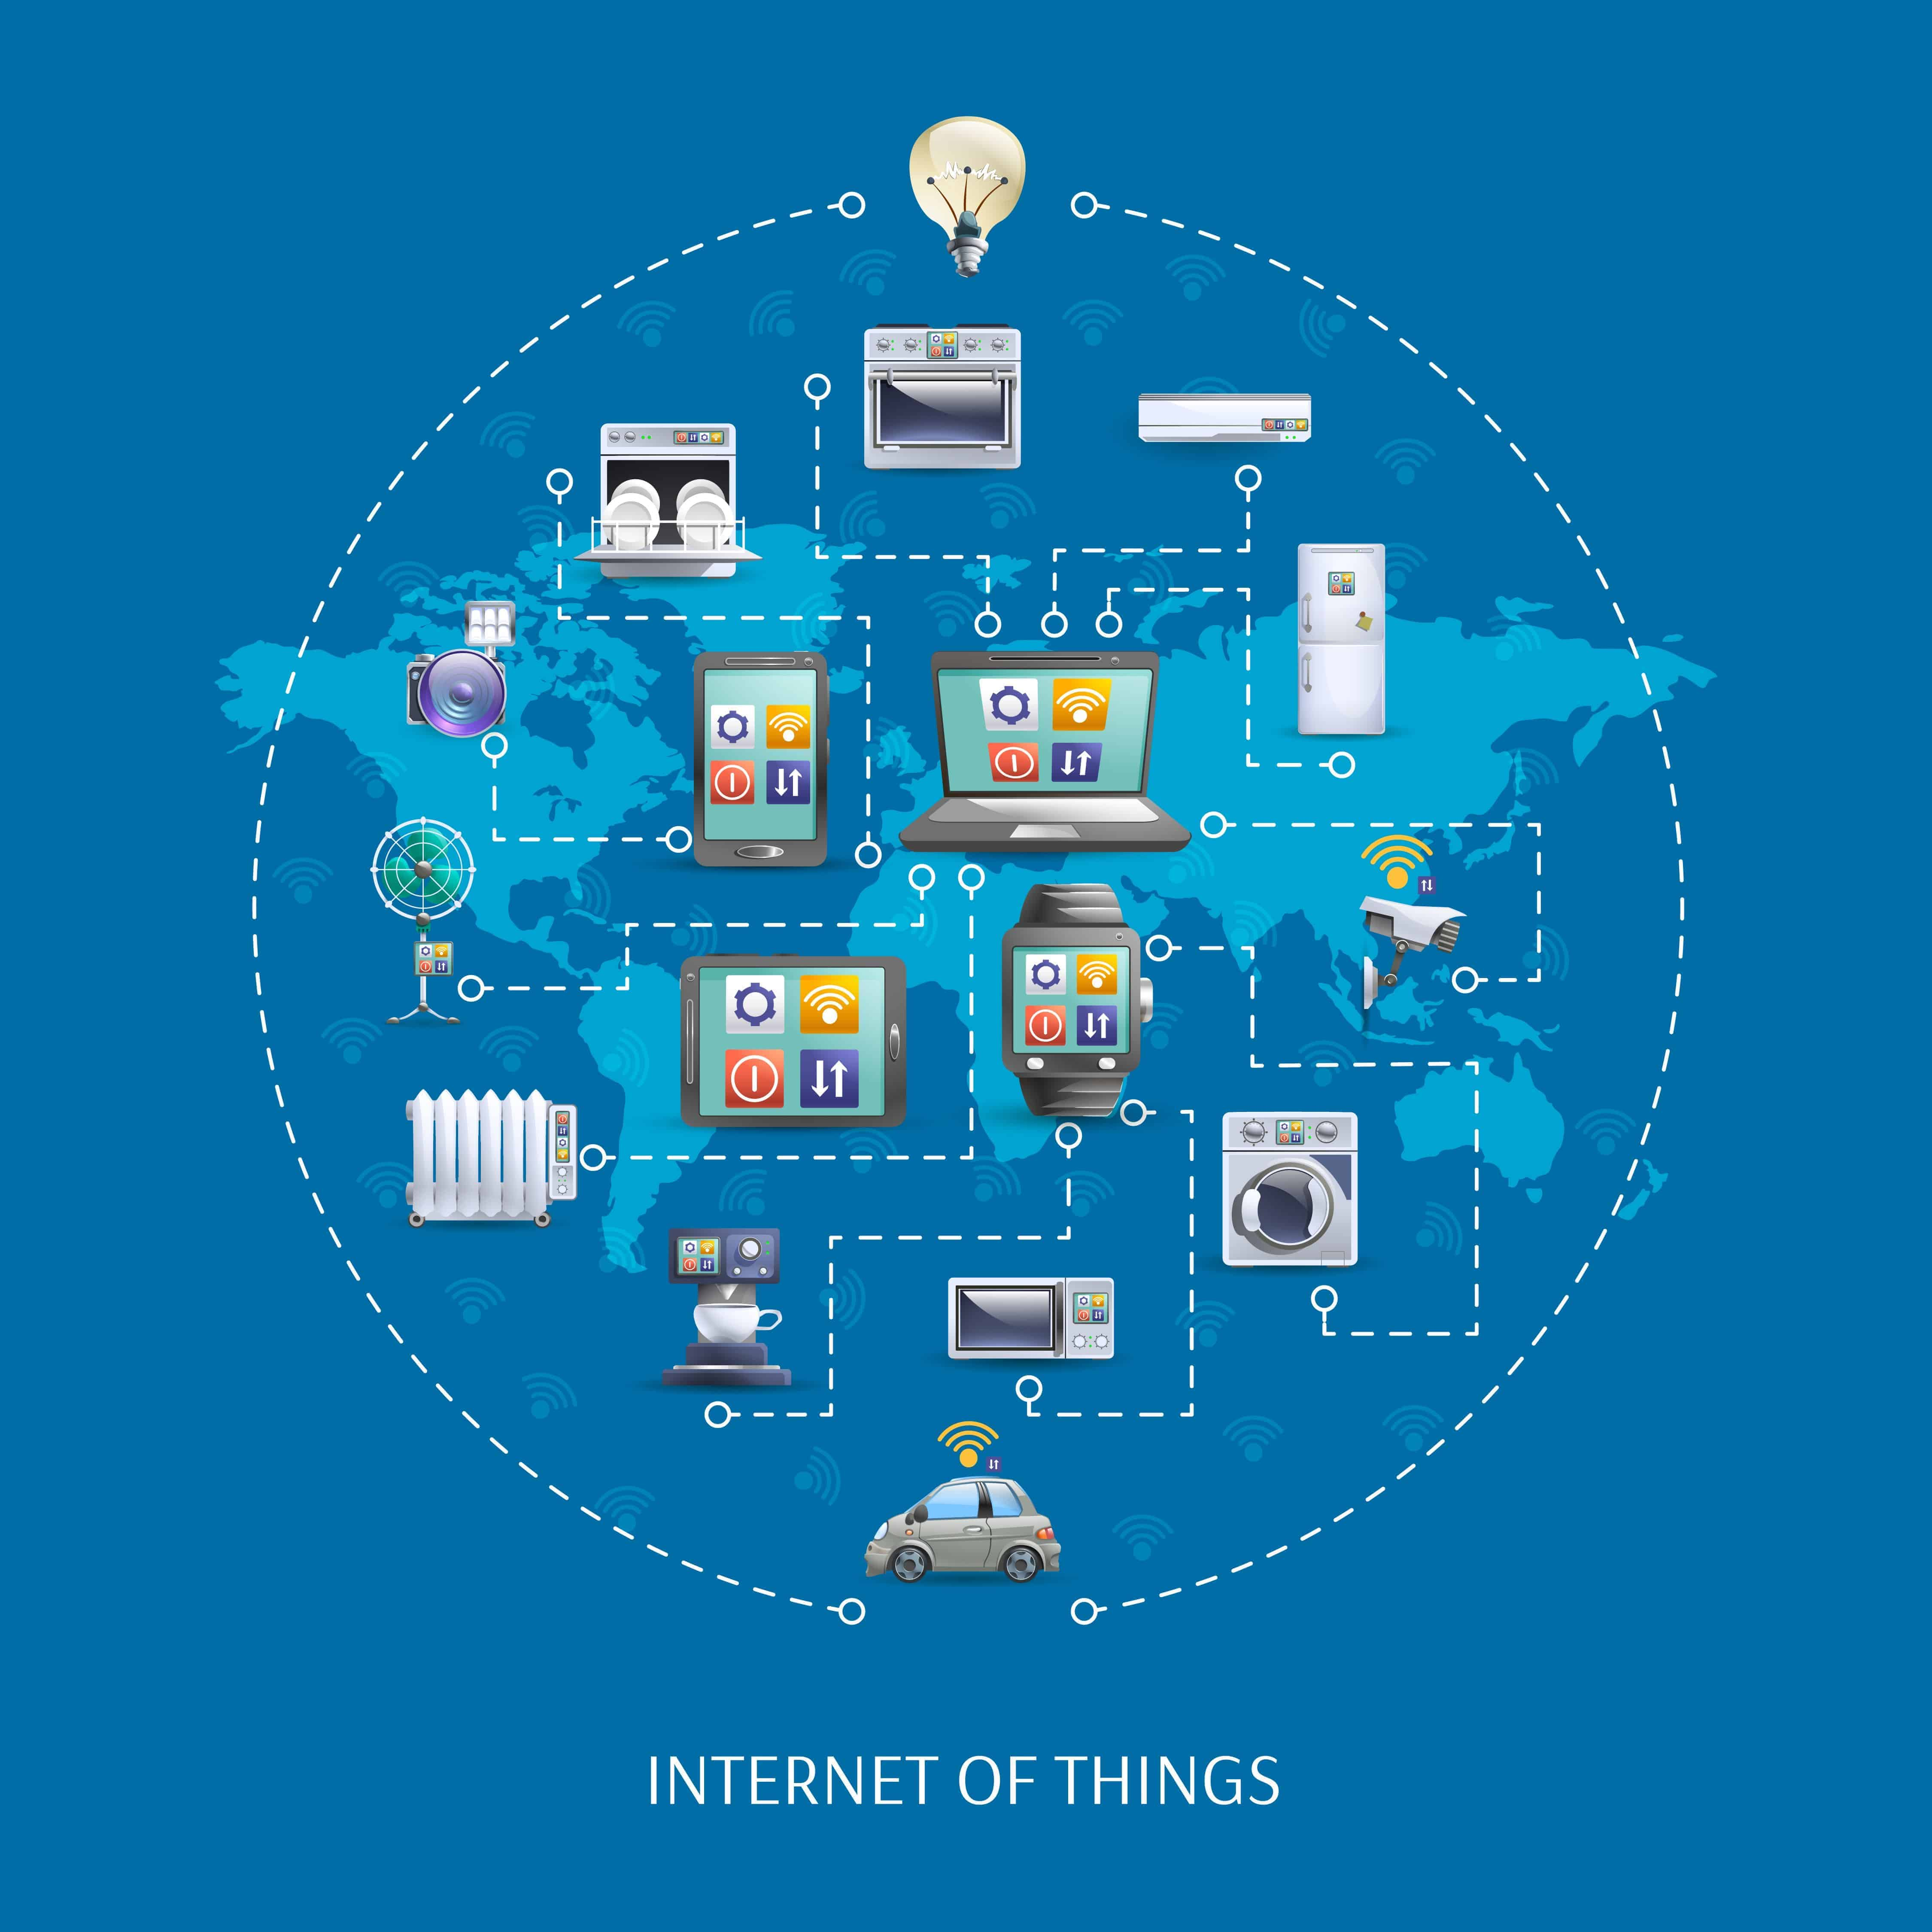 iot security, The Internet of Things